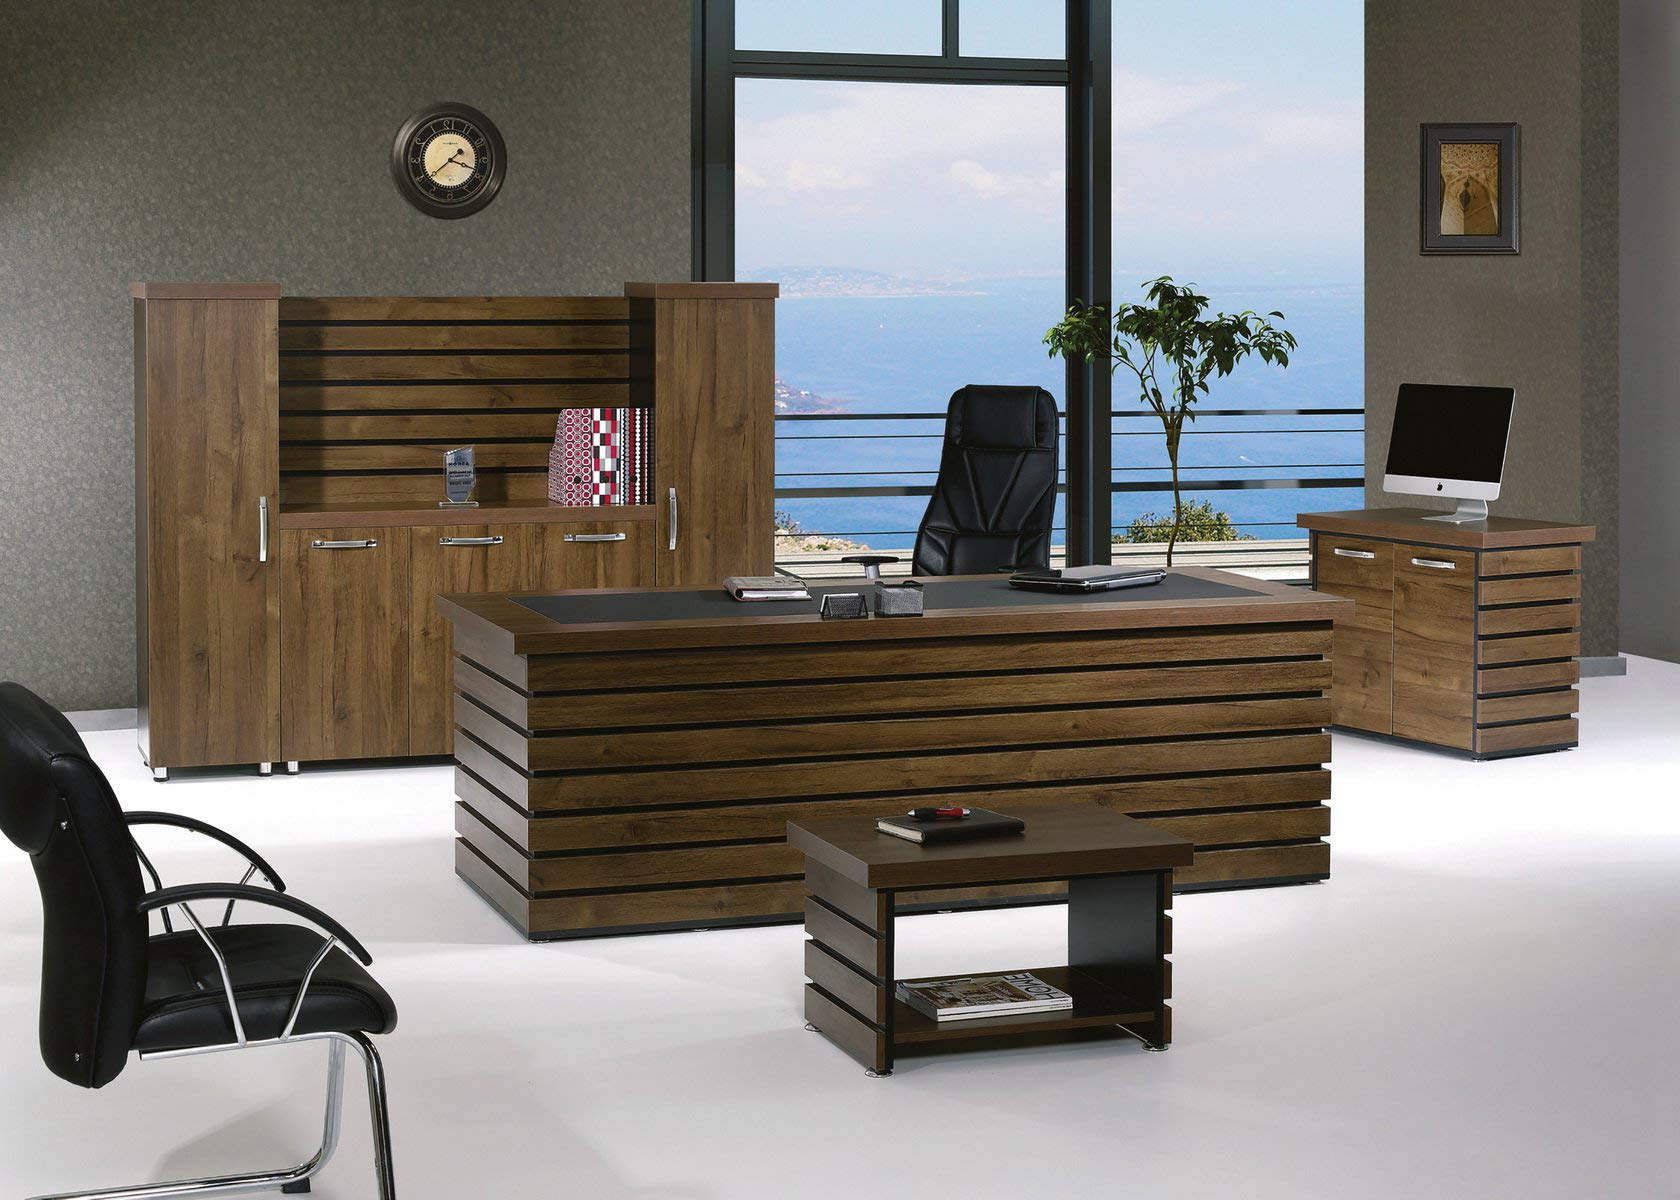 Casa Mare Modern Elise 4 Pieces Office Furniture Set | Home Office Furniture | Office Desk | Executive Desk | Rustic Brown & Black (87'') by Casa Mare